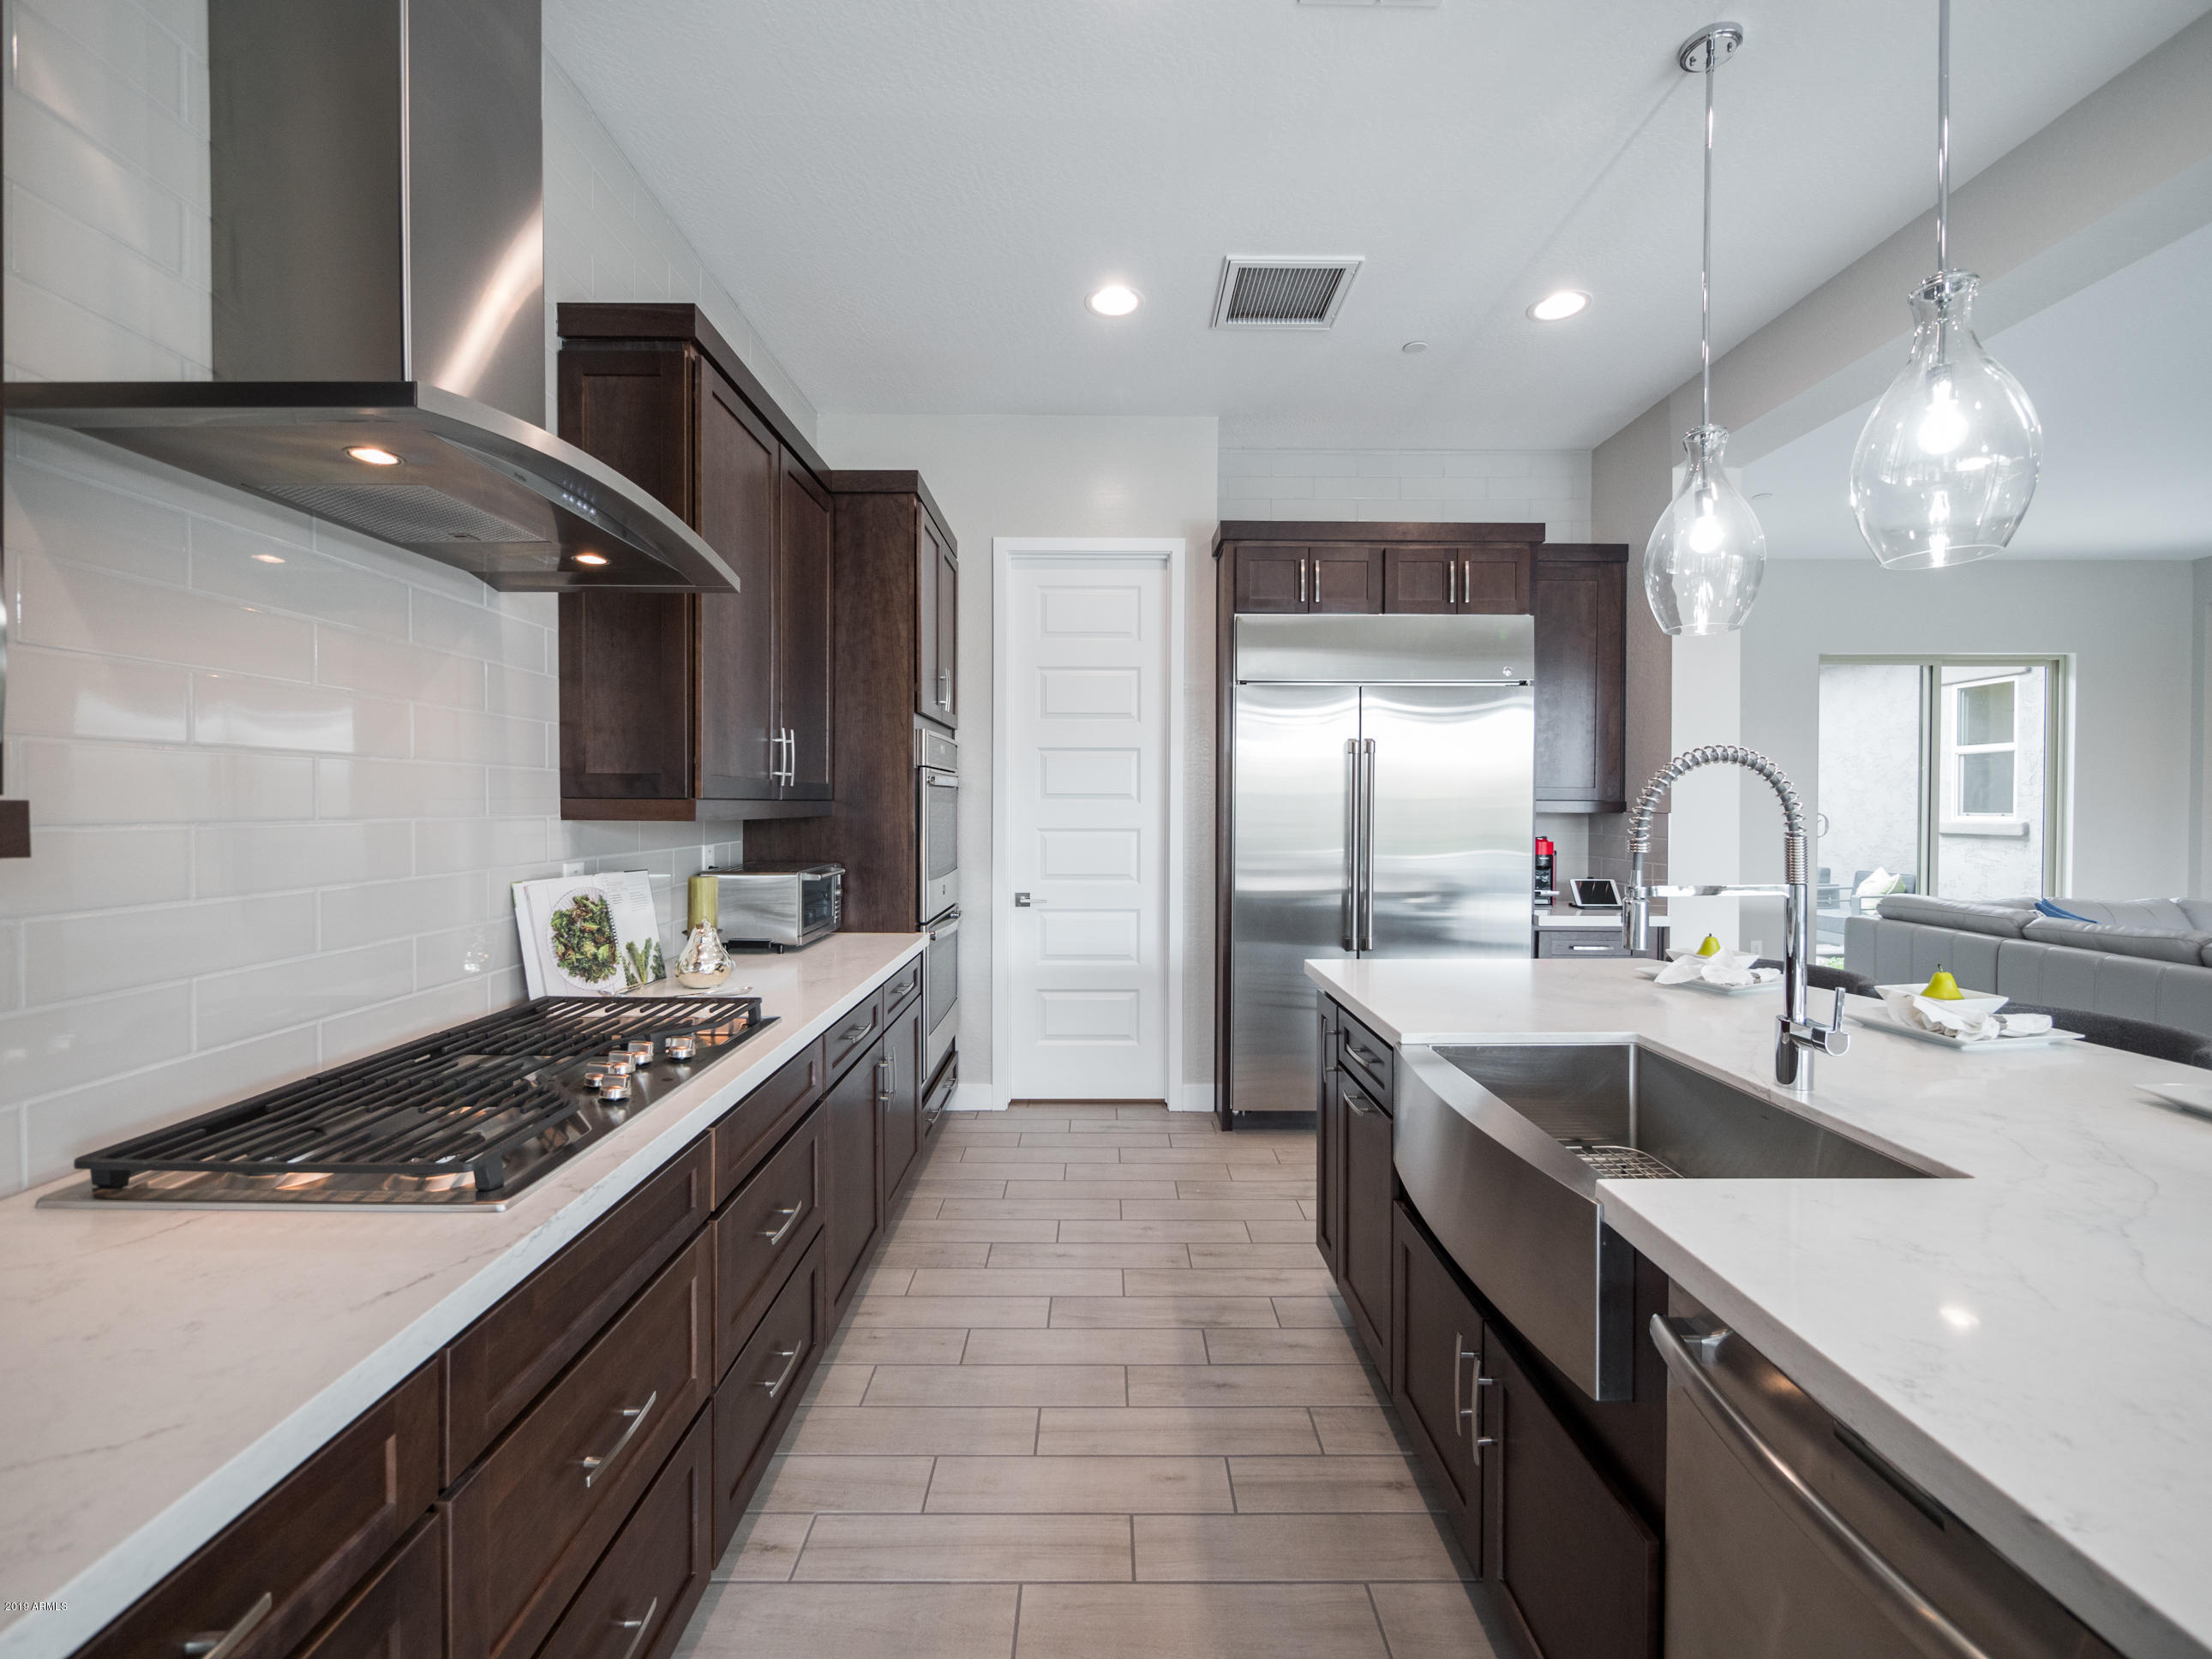 Upscale Stainless Appliances